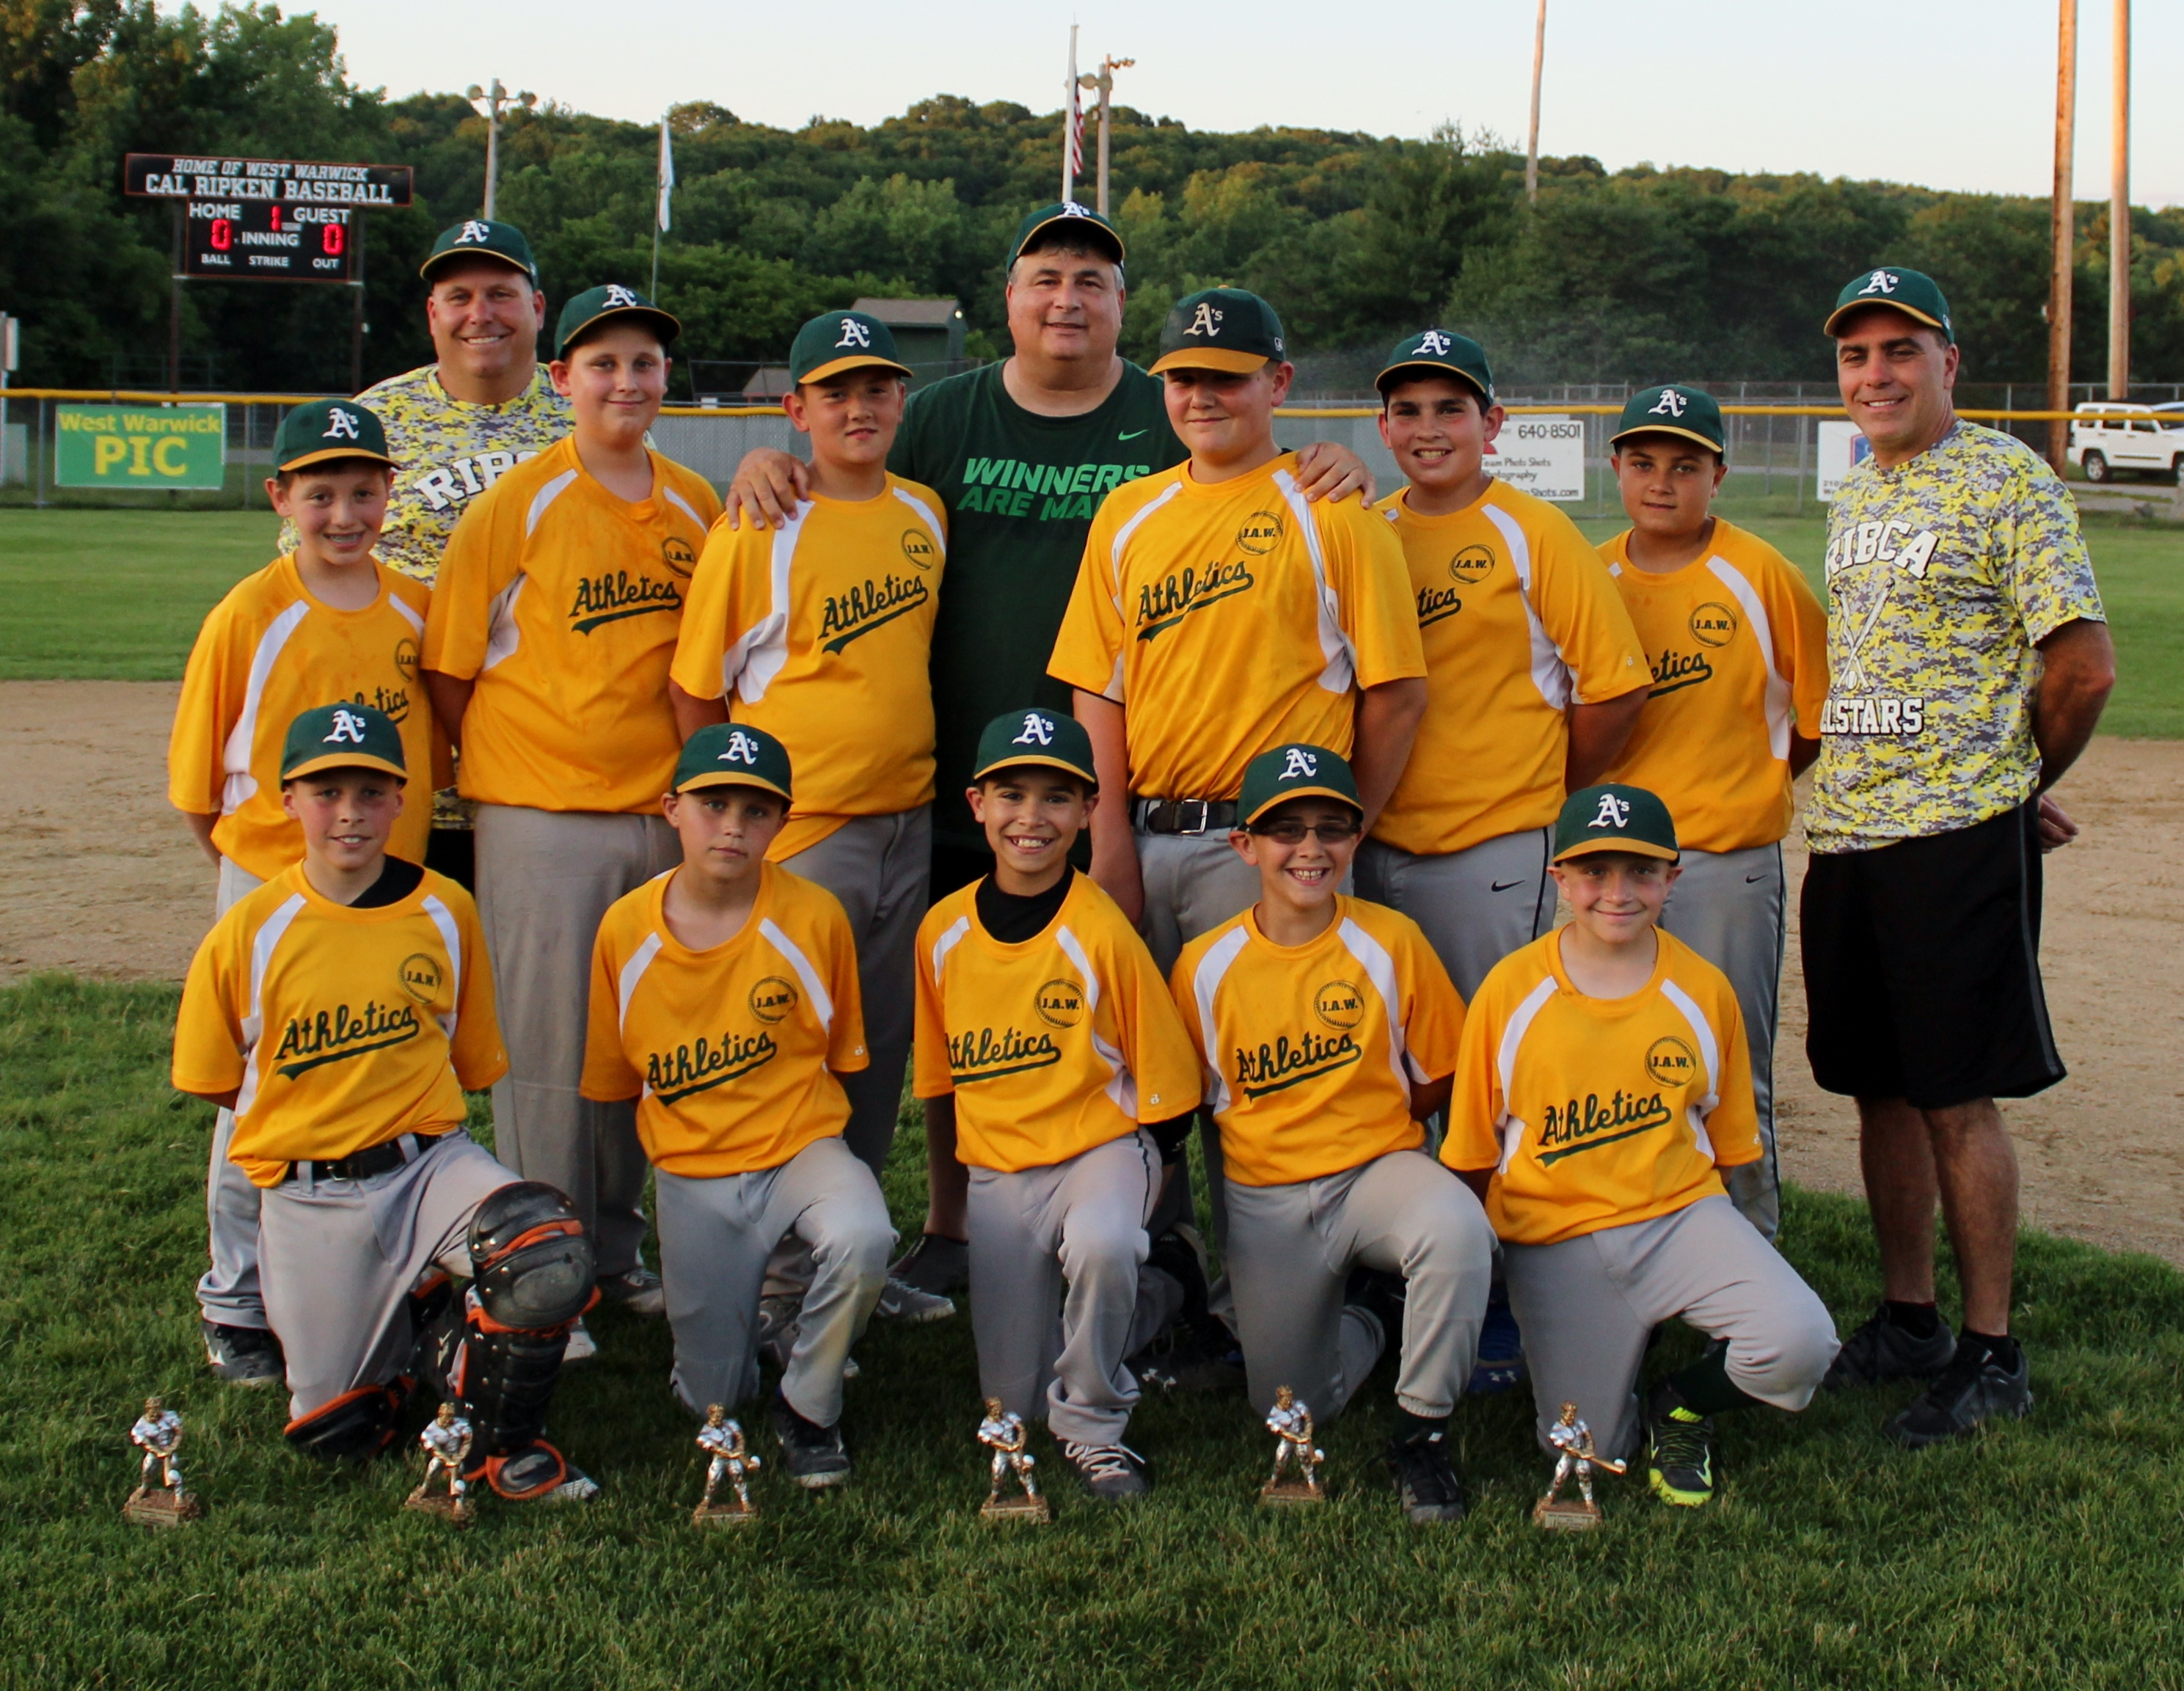 Teampages Wizards Baseball Ww Pic Athletics Win Third Consecutive Wwcrl Championship